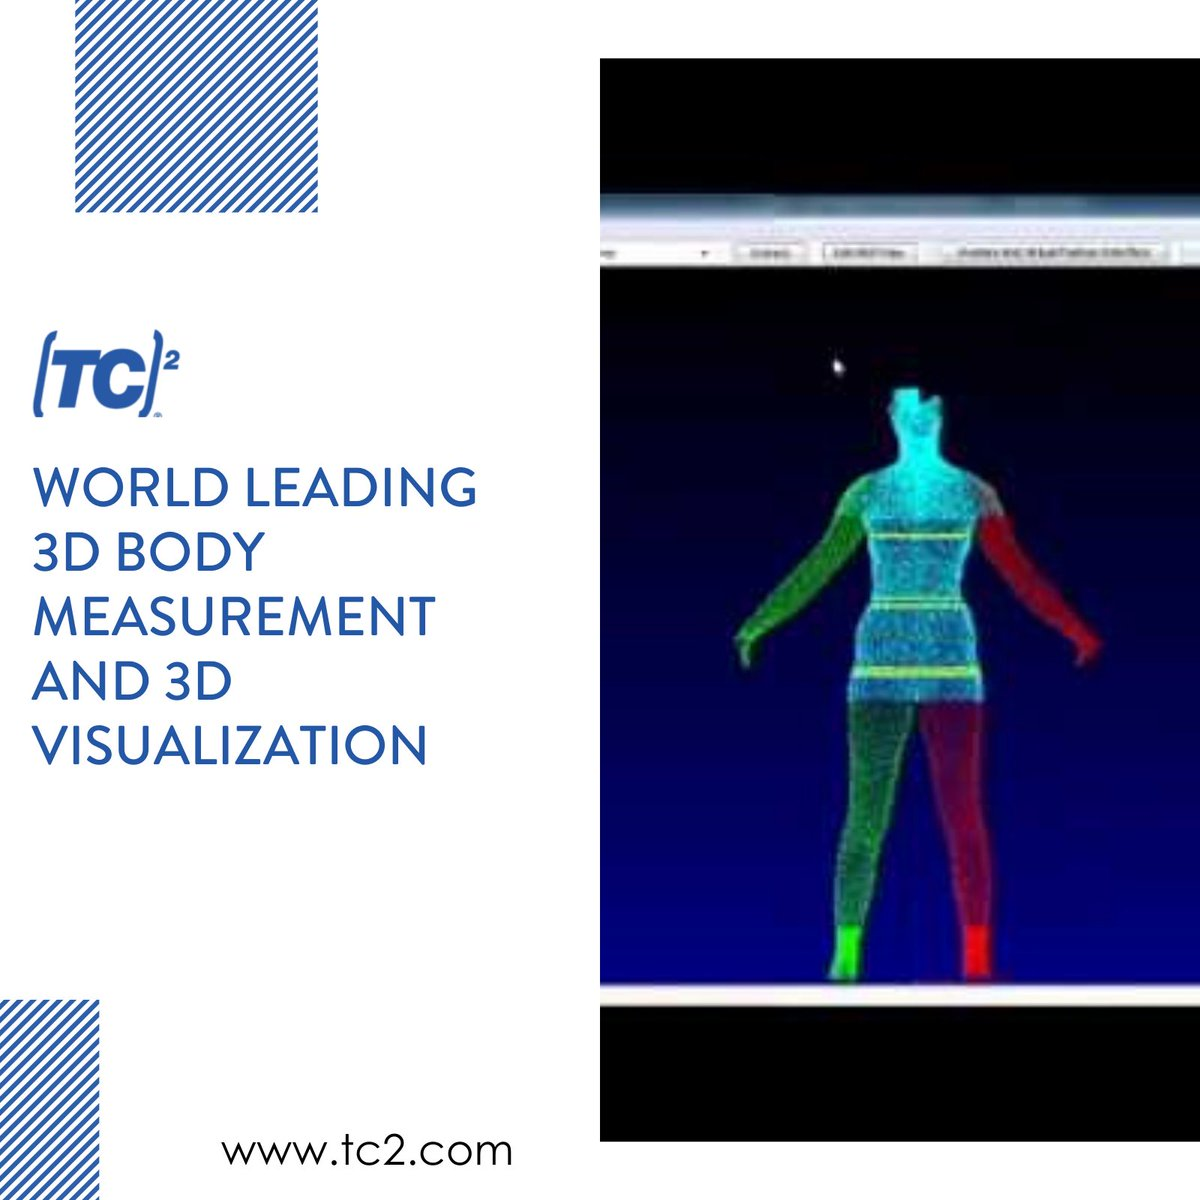 The new-age technology to your rescue. Know More >>    #EasySetUp #SelfScan #MobileScanner #3DTechnology #Fashion #Reach #Research #Reality #3dcustomisedsolutions #3DServices #3DScanners #3rdDimension #NewDimension #Tc2 #TcSquared #USA #LatestTechnology